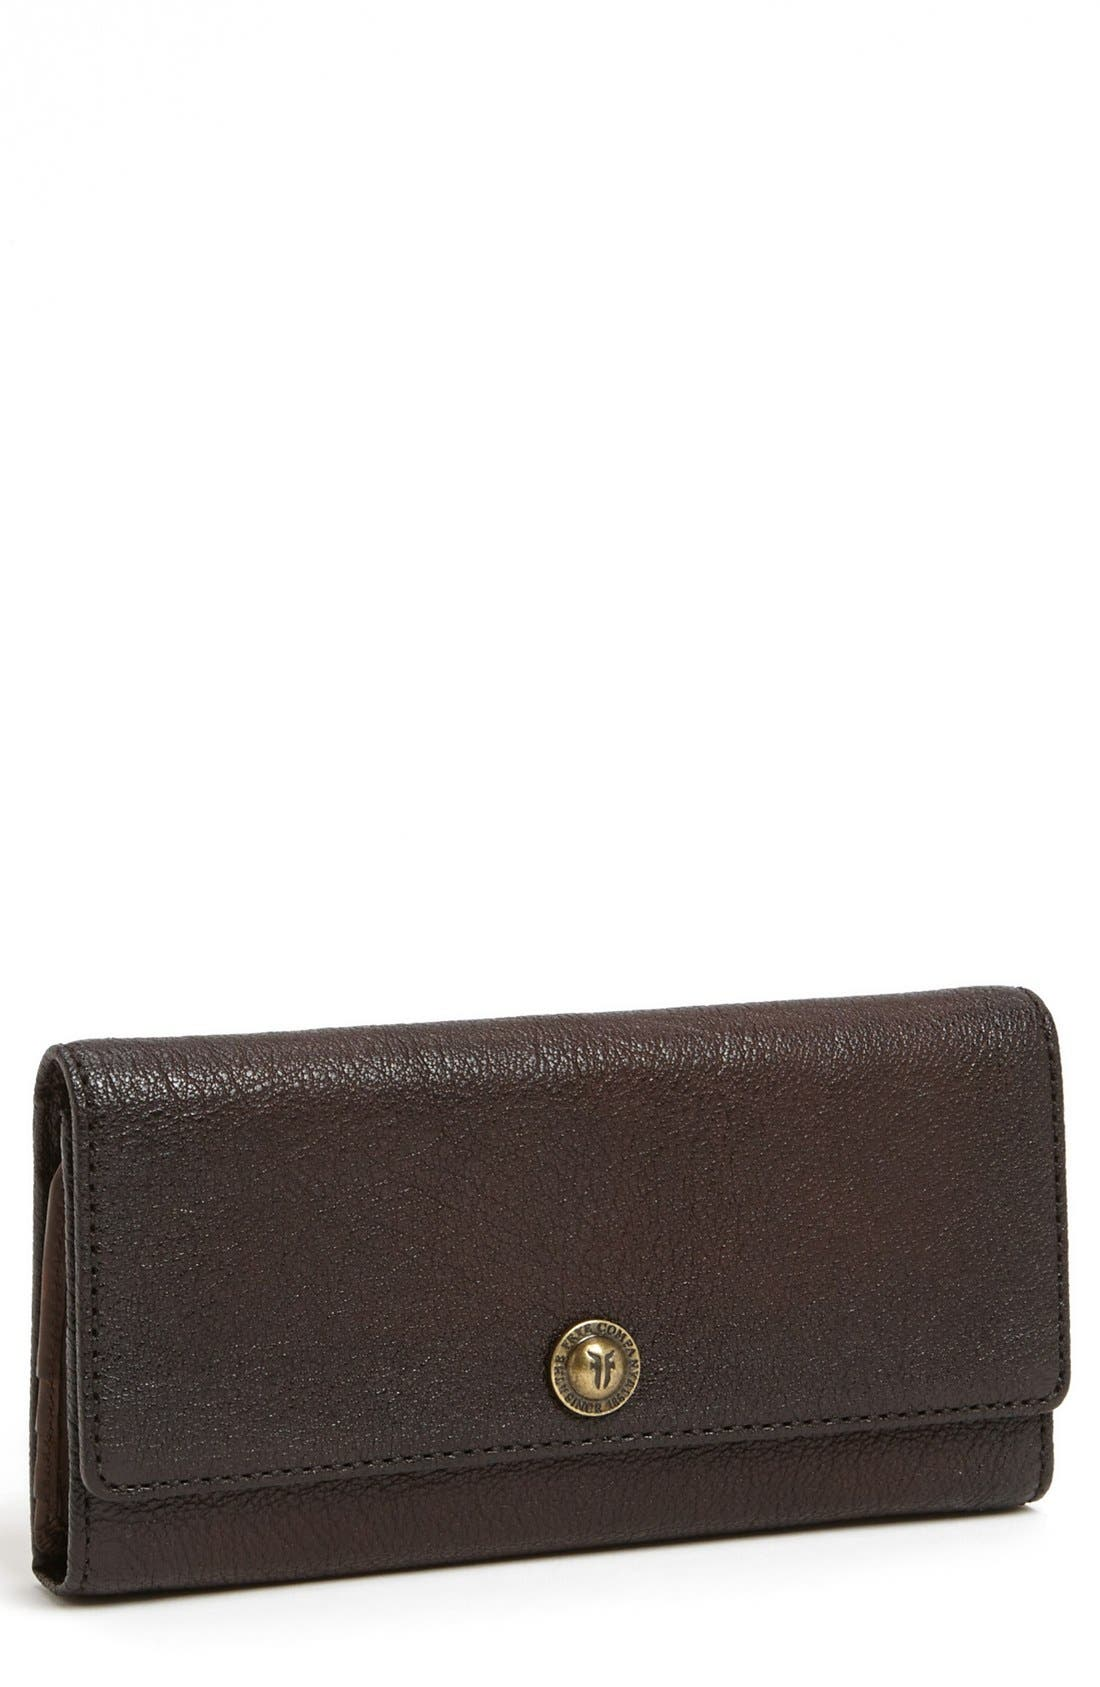 Main Image - Frye 'Melissa' Leather Wallet